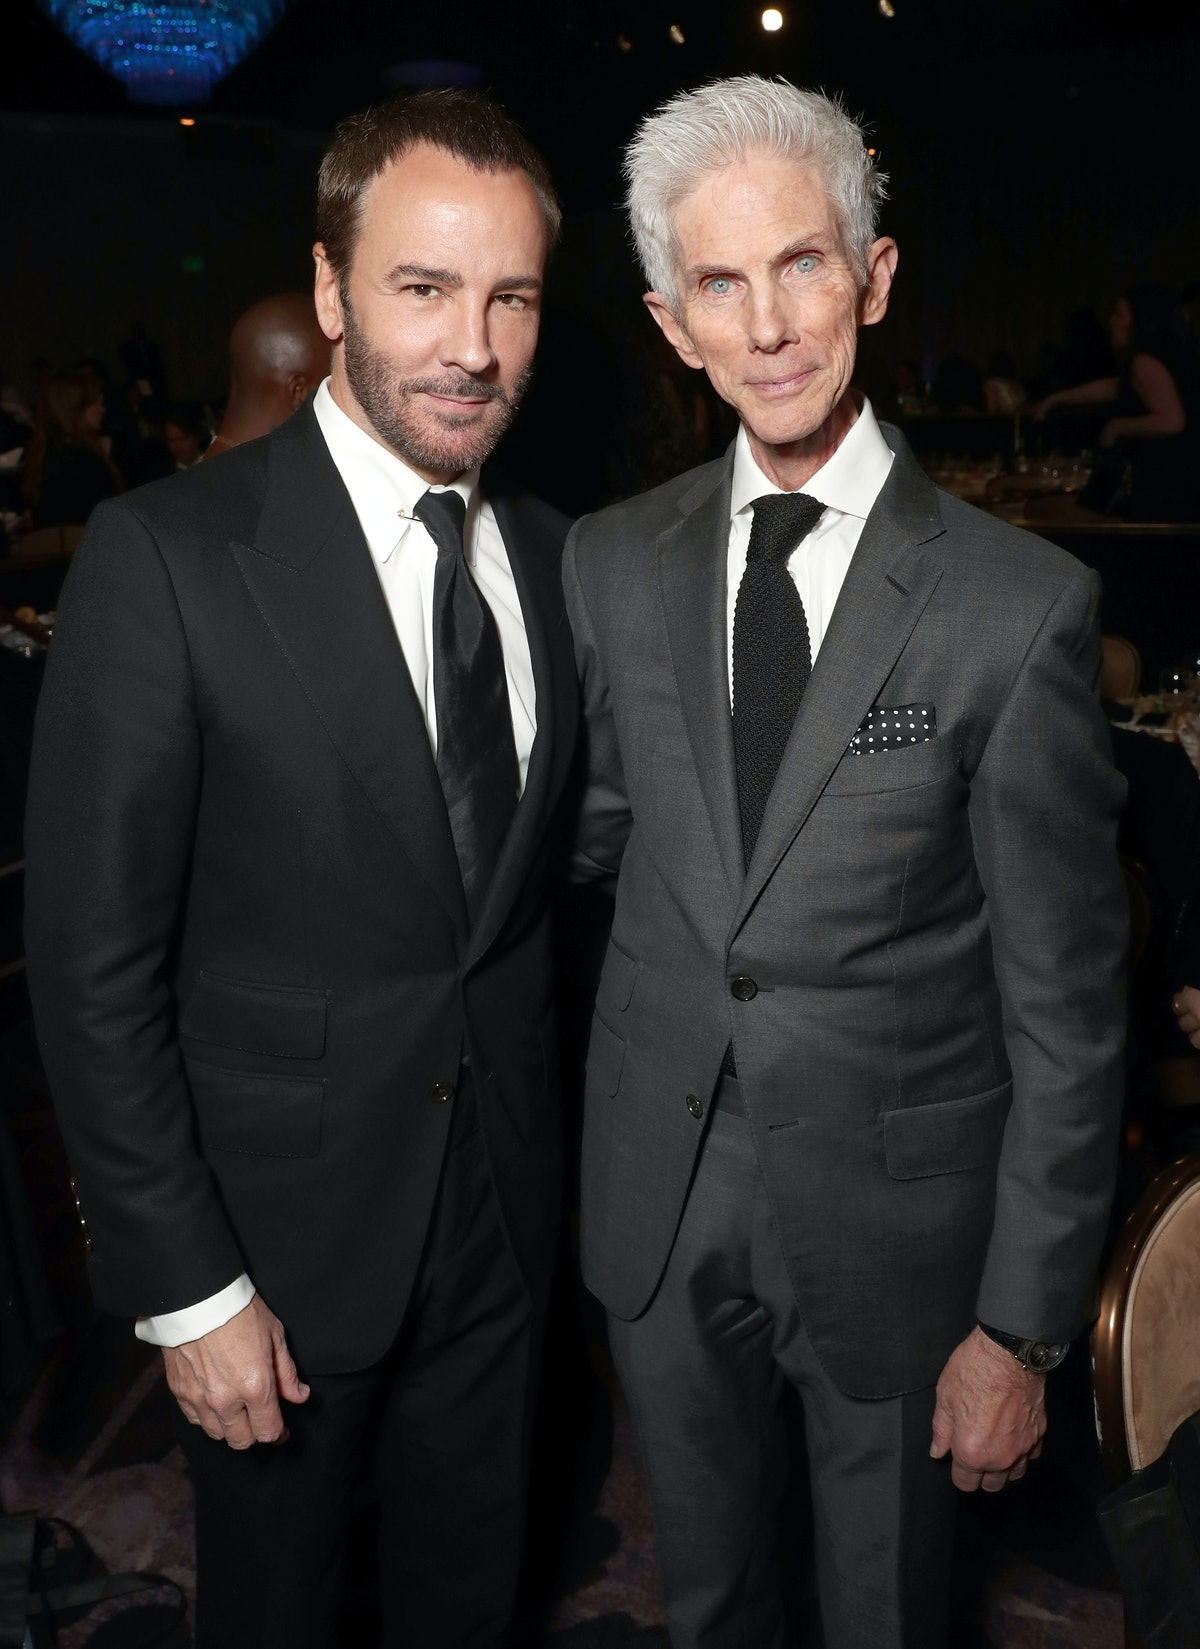 BEVERLY HILLS, CA - FEBRUARY 19:  Tom Ford and Richard Buckley attend the 2017 Writers Guild Awards ...